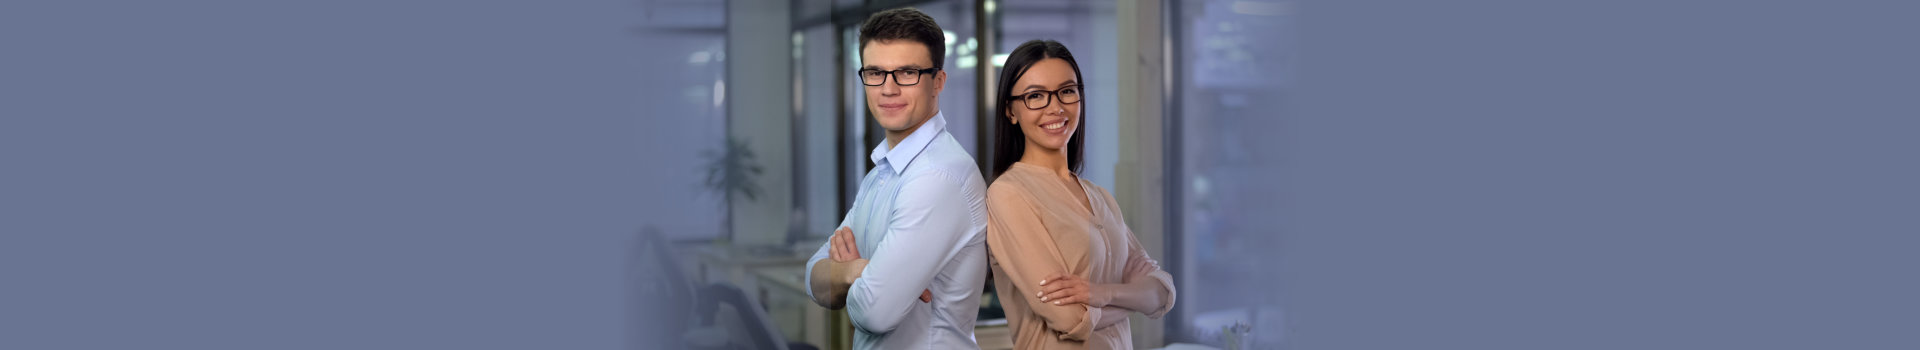 Male and female office workers looking in camera